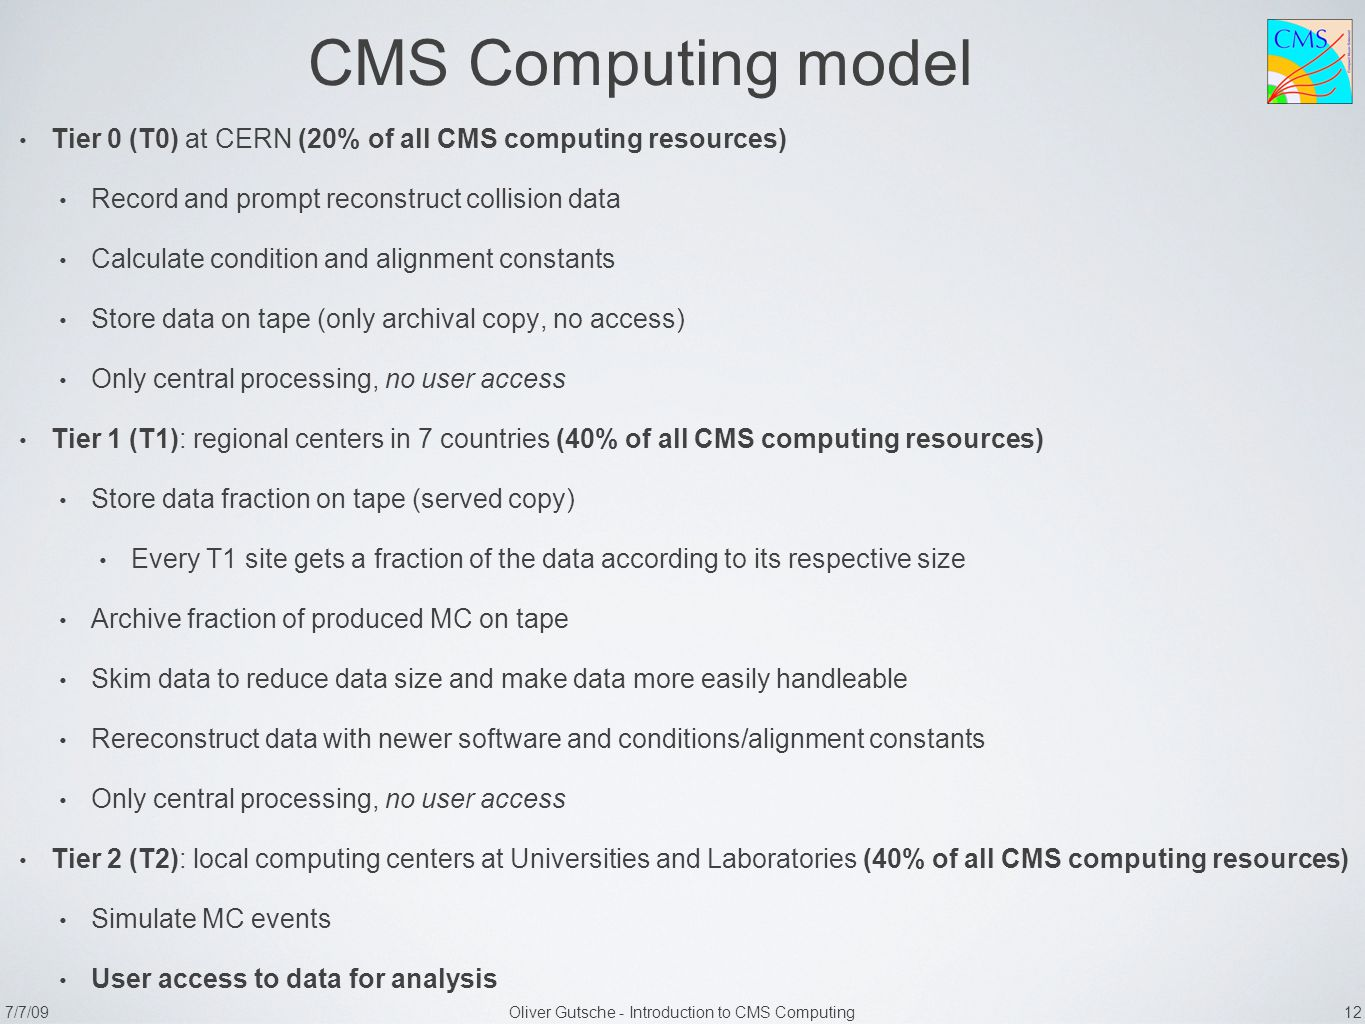 7/7/09Oliver Gutsche - Introduction to CMS Computing 12 CMS Computing model Tier 0 (T0) at CERN (20% of all CMS computing resources) Record and prompt reconstruct collision data Calculate condition and alignment constants Store data on tape (only archival copy, no access) Only central processing, no user access Tier 1 (T1): regional centers in 7 countries (40% of all CMS computing resources) Store data fraction on tape (served copy) Every T1 site gets a fraction of the data according to its respective size Archive fraction of produced MC on tape Skim data to reduce data size and make data more easily handleable Rereconstruct data with newer software and conditions/alignment constants Only central processing, no user access Tier 2 (T2): local computing centers at Universities and Laboratories (40% of all CMS computing resources) Simulate MC events User access to data for analysis